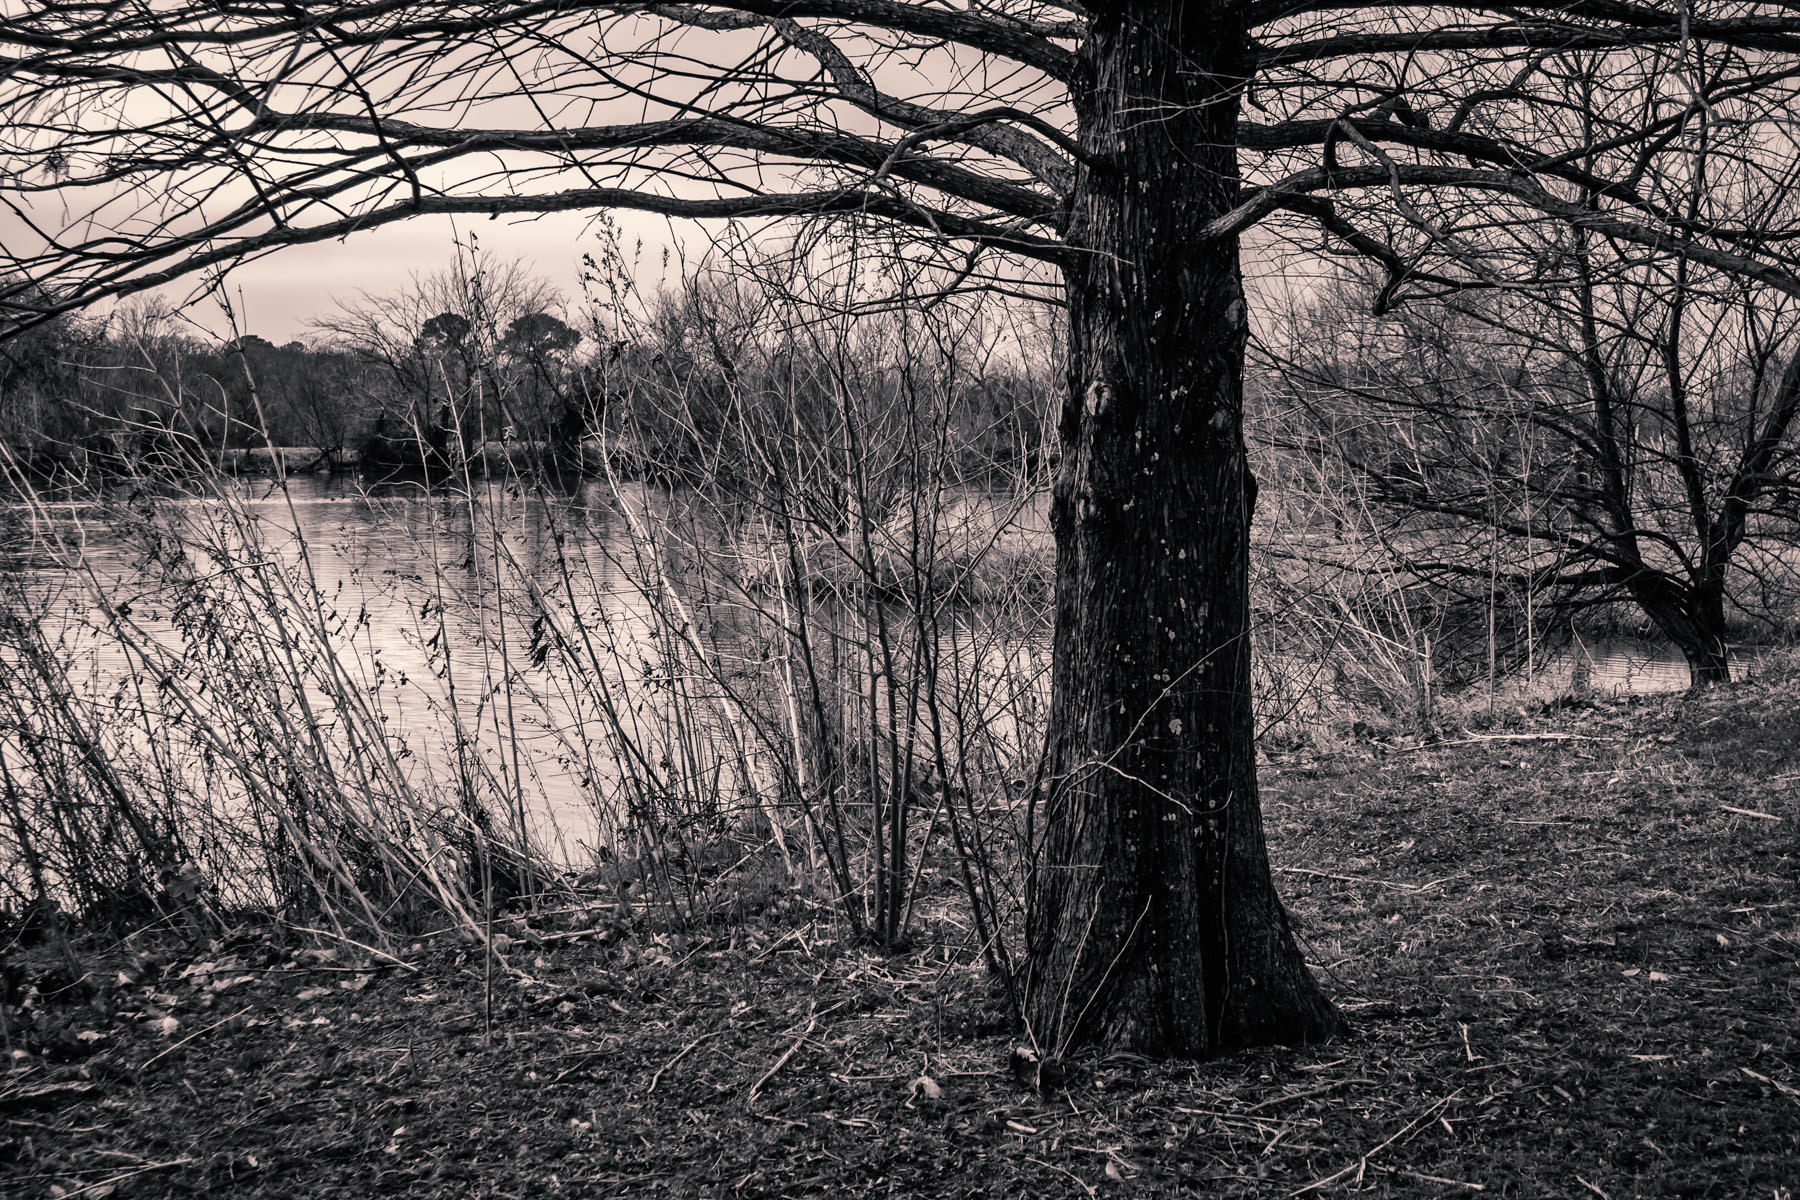 Trees and brush growing along the shore of a pond on the campus of the University of North Texas in Denton.